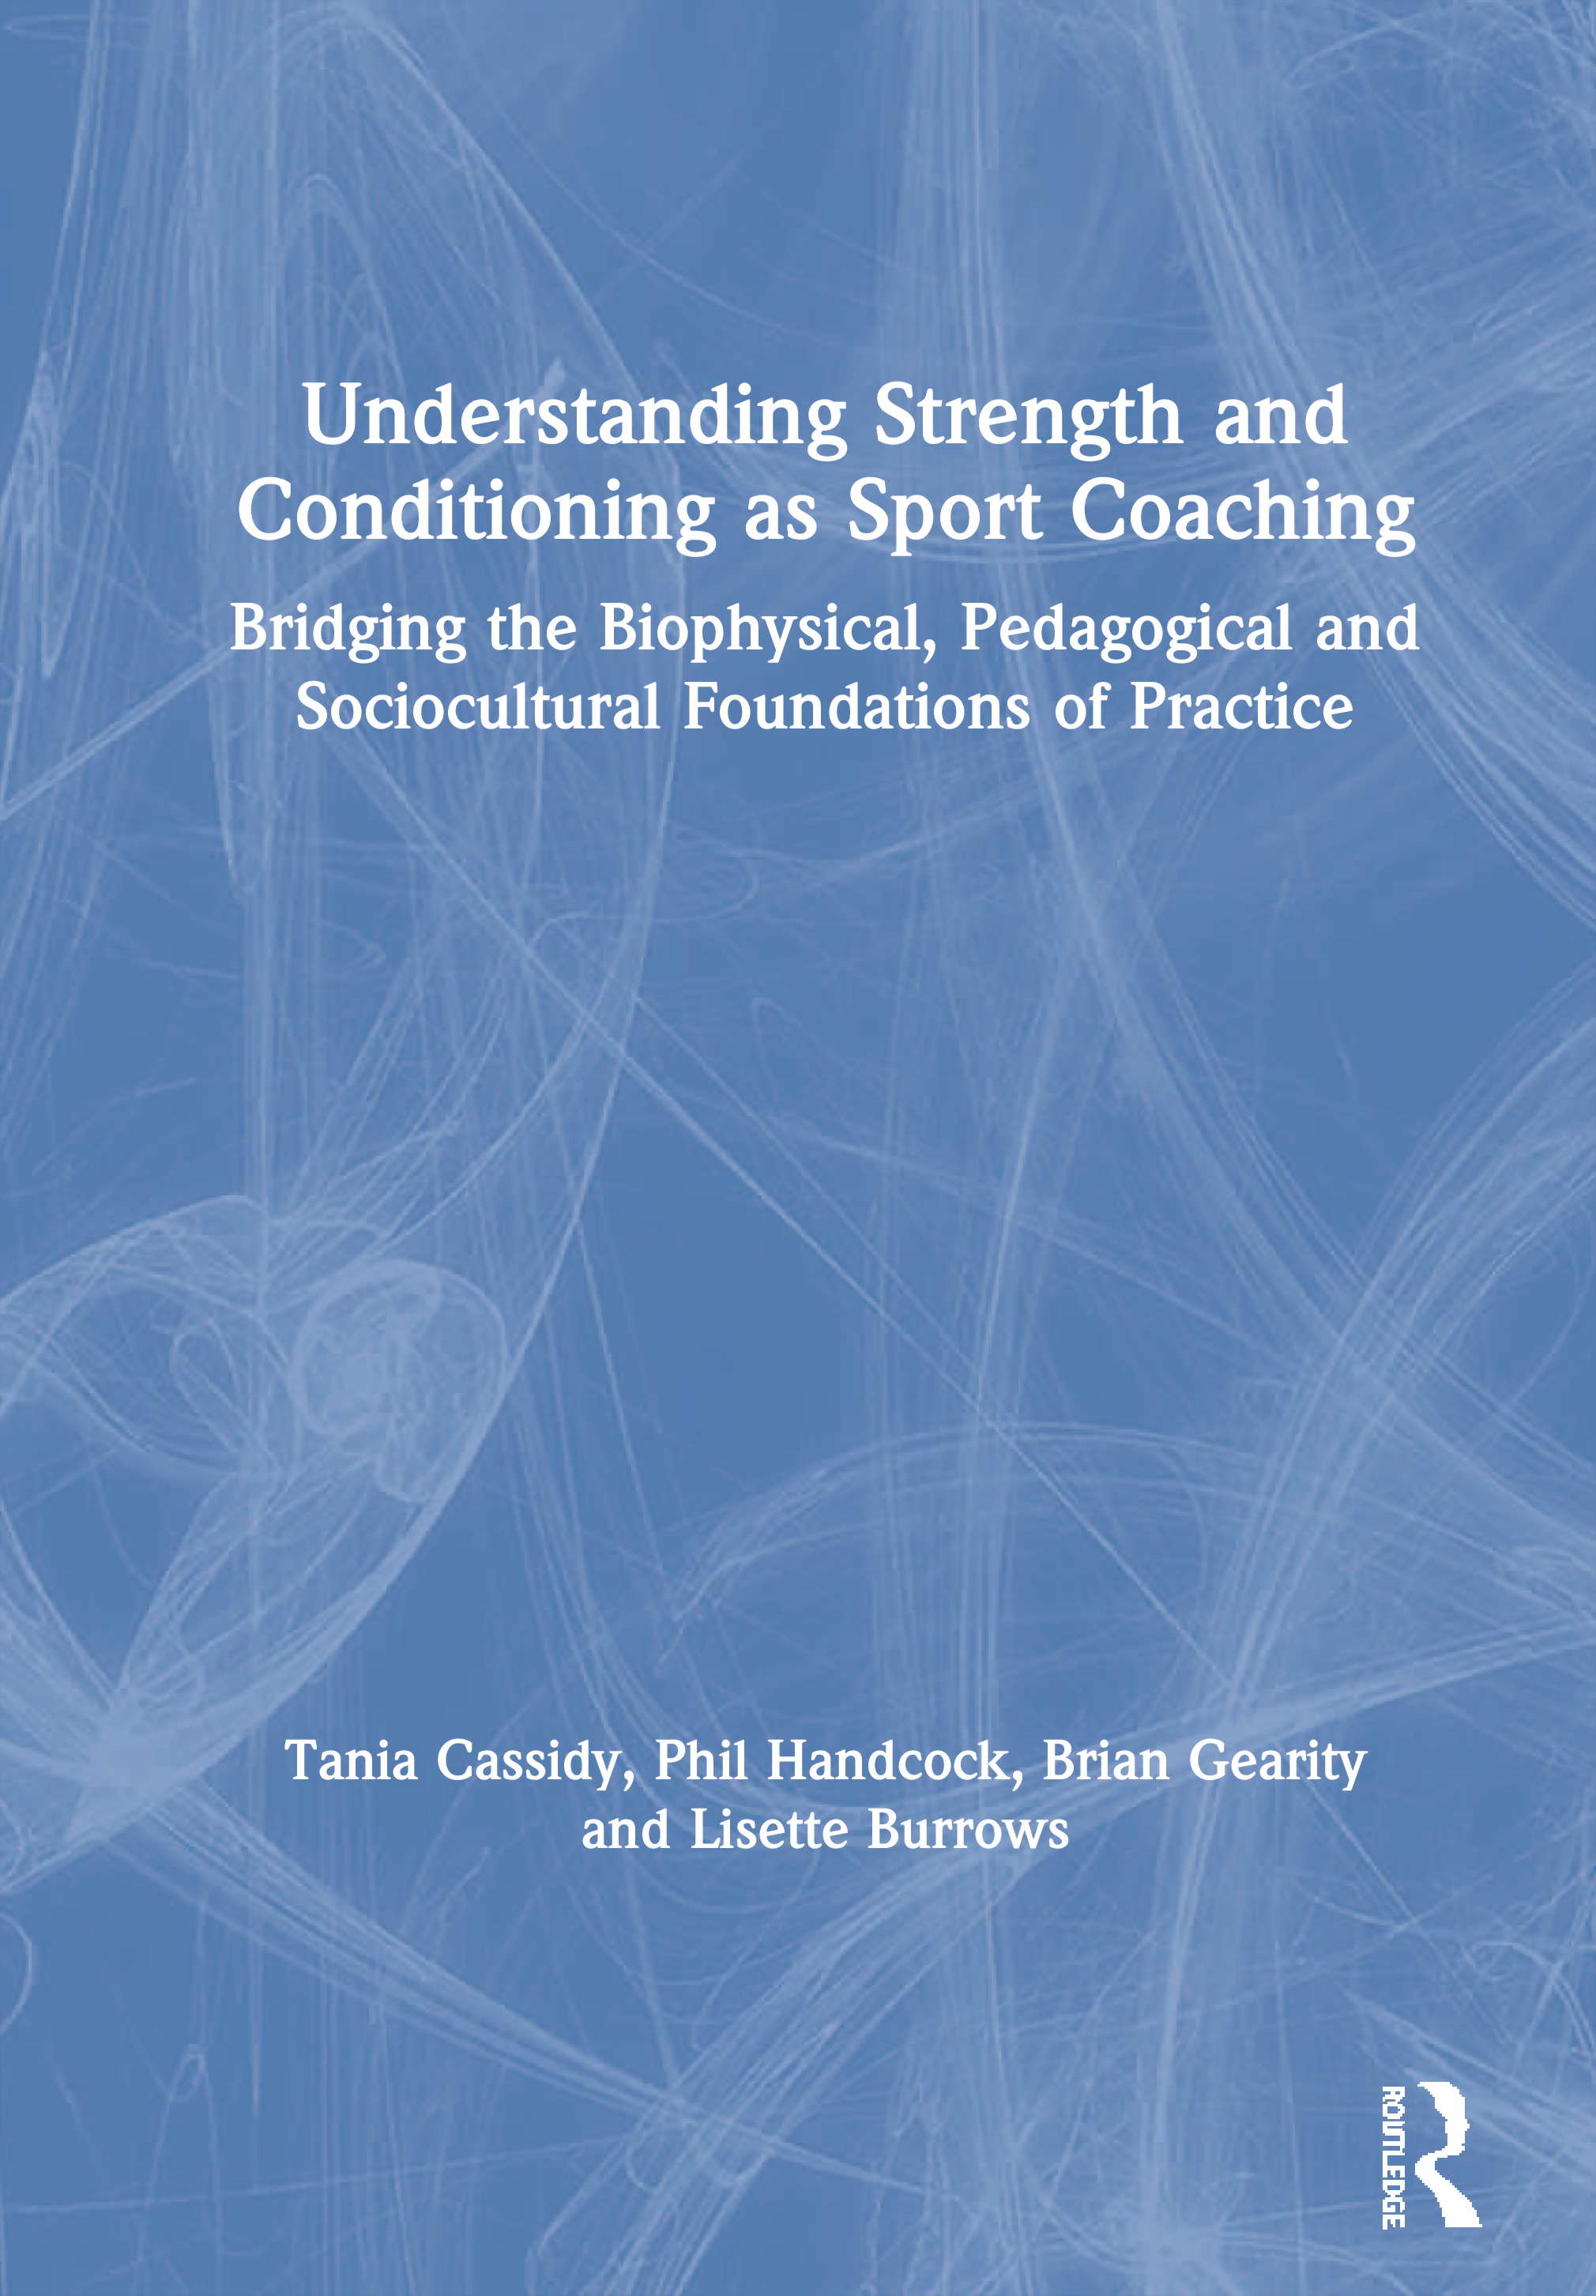 Understanding Strength and Conditioning as Sport Coaching: Bridging the Biophysical, Pedagogical and Sociocultural Foundations of Practice book cover